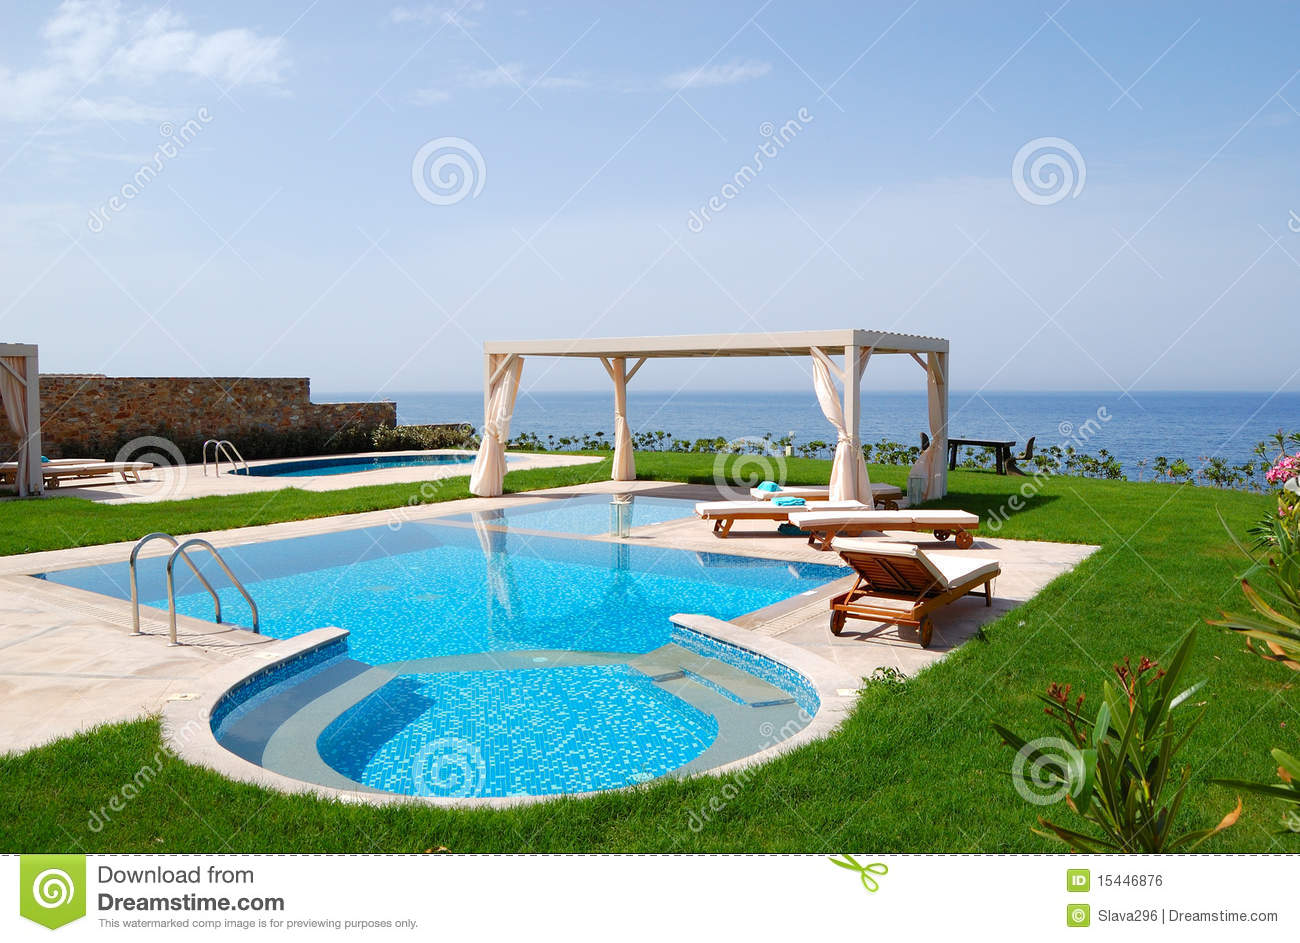 swimming pool with jacuzzi royalty free stock image. Black Bedroom Furniture Sets. Home Design Ideas